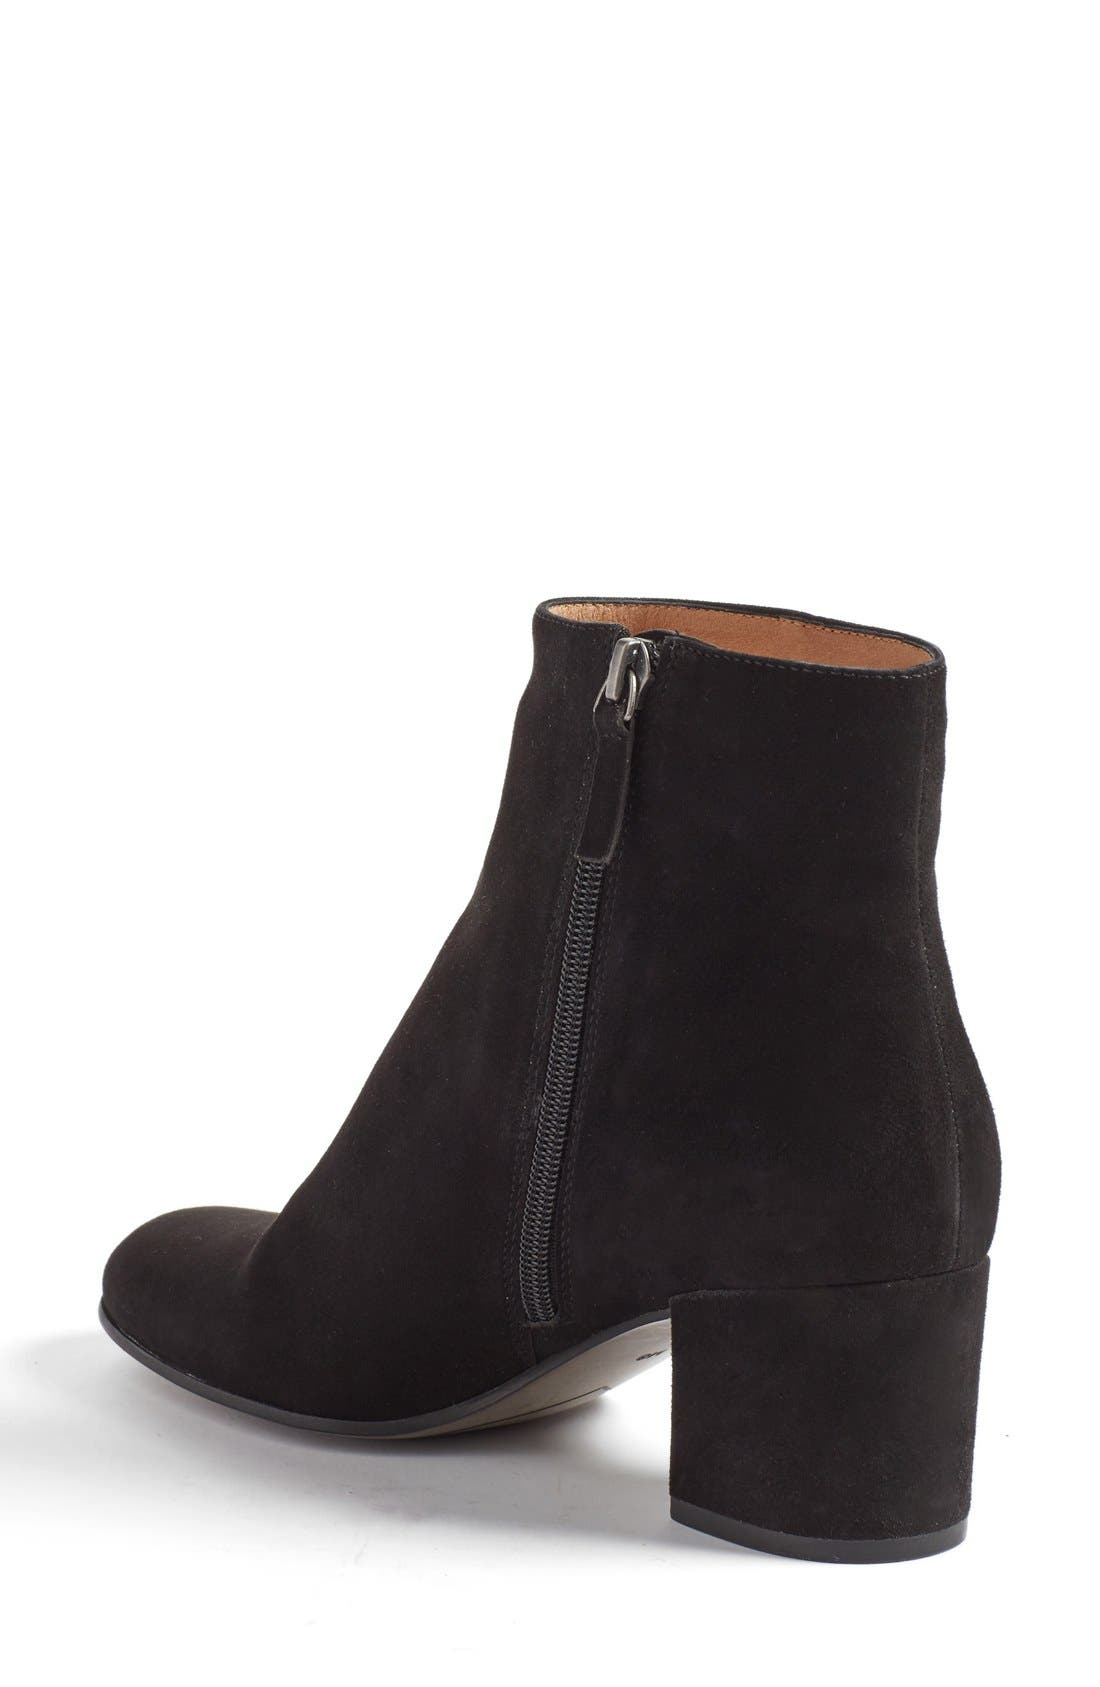 'Cori' Round Toe Bootie,                             Alternate thumbnail 2, color,                             001